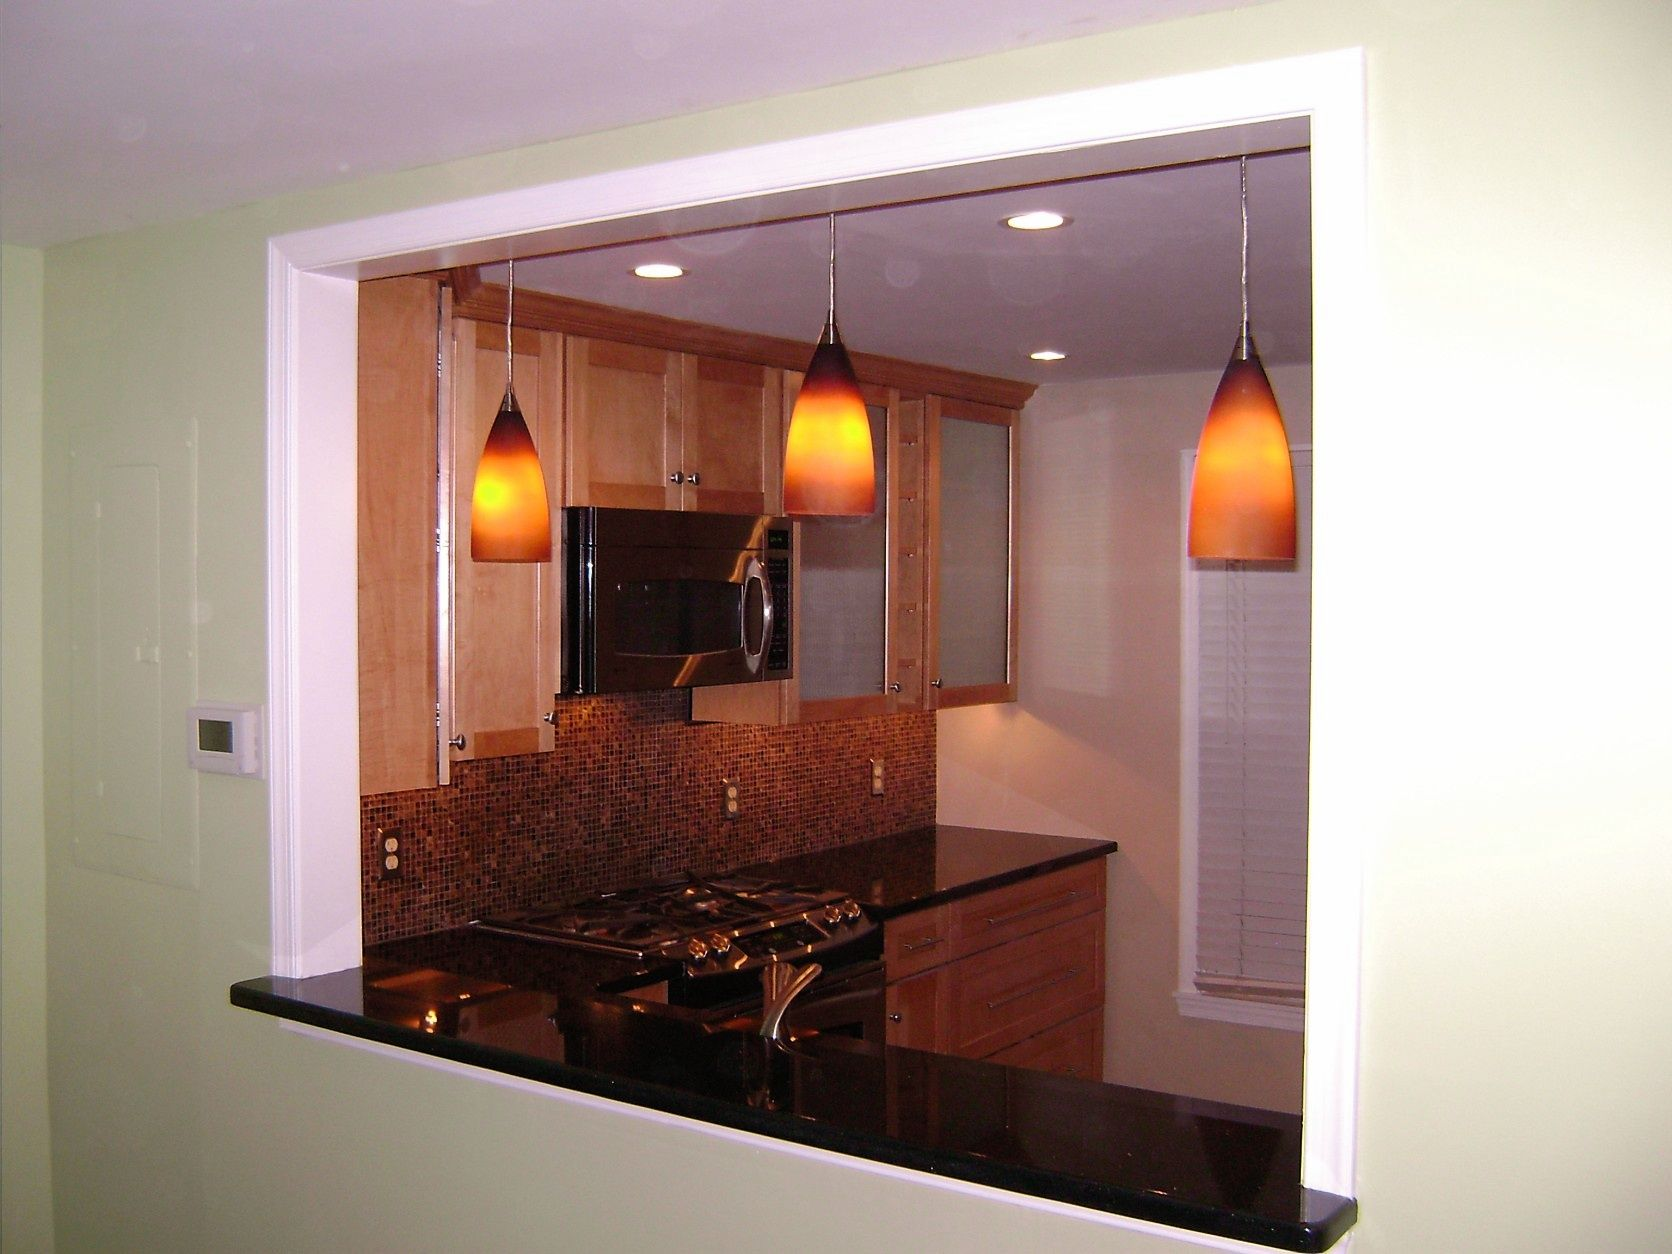 Pendant Lights In A Newly Created Opening Between The Kitchen And